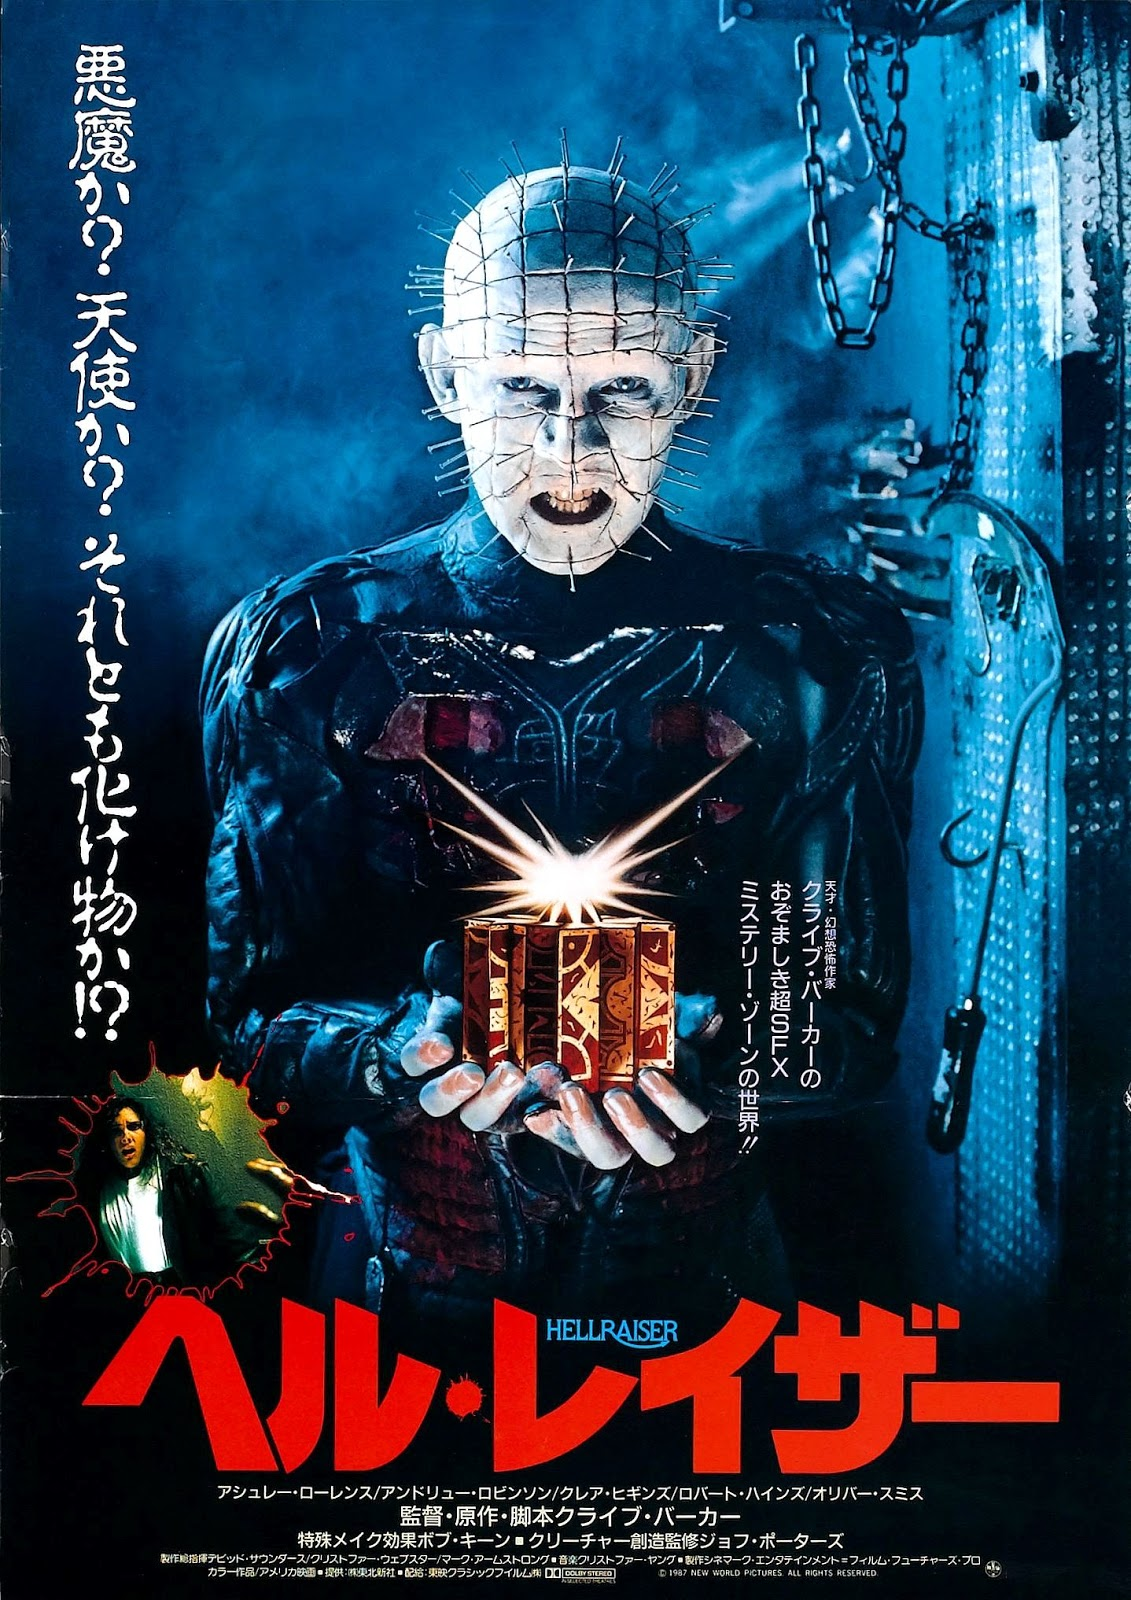 Happyotter: HELLRAISER (1987)